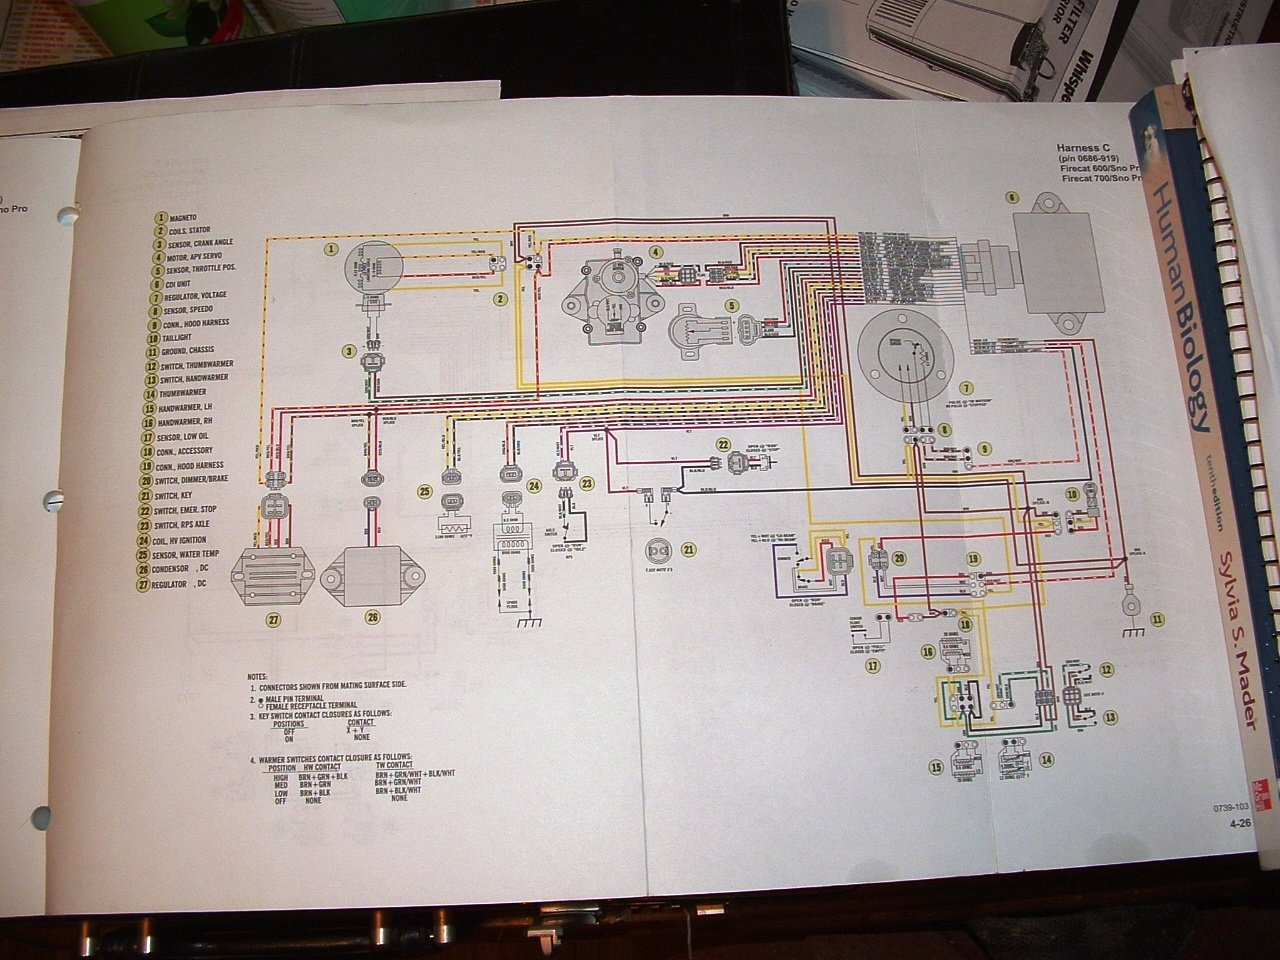 polaris ranger wiring diagram bmw e53 speaker voltage regulator all data library generator click image for larger